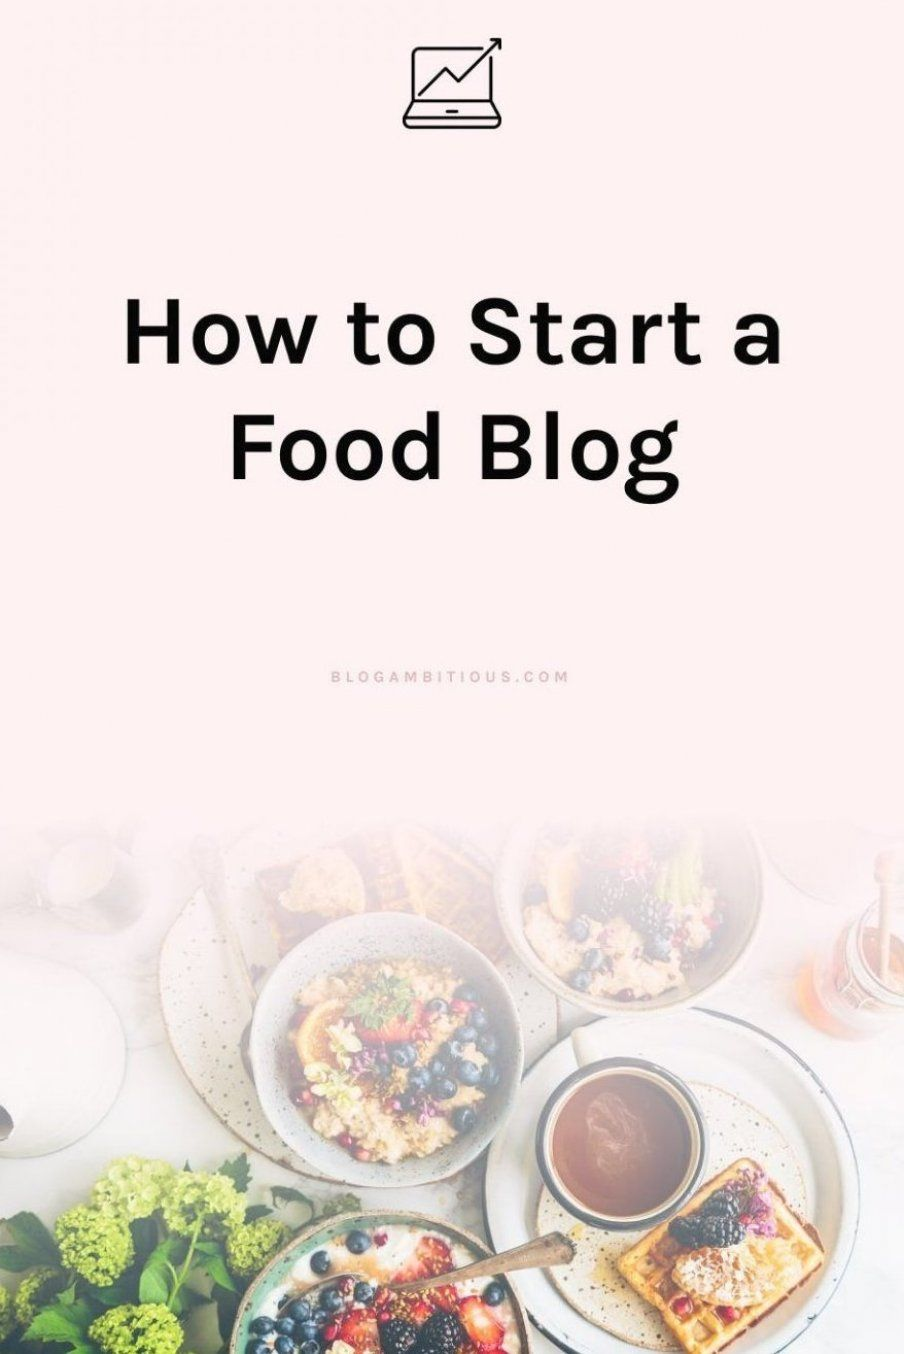 How To Start A Food Blog Every Wondered How Food Bloggers Make Money This Is Your Chance To Get In On The Action And Make Money Food Blog Cooking Blog Food